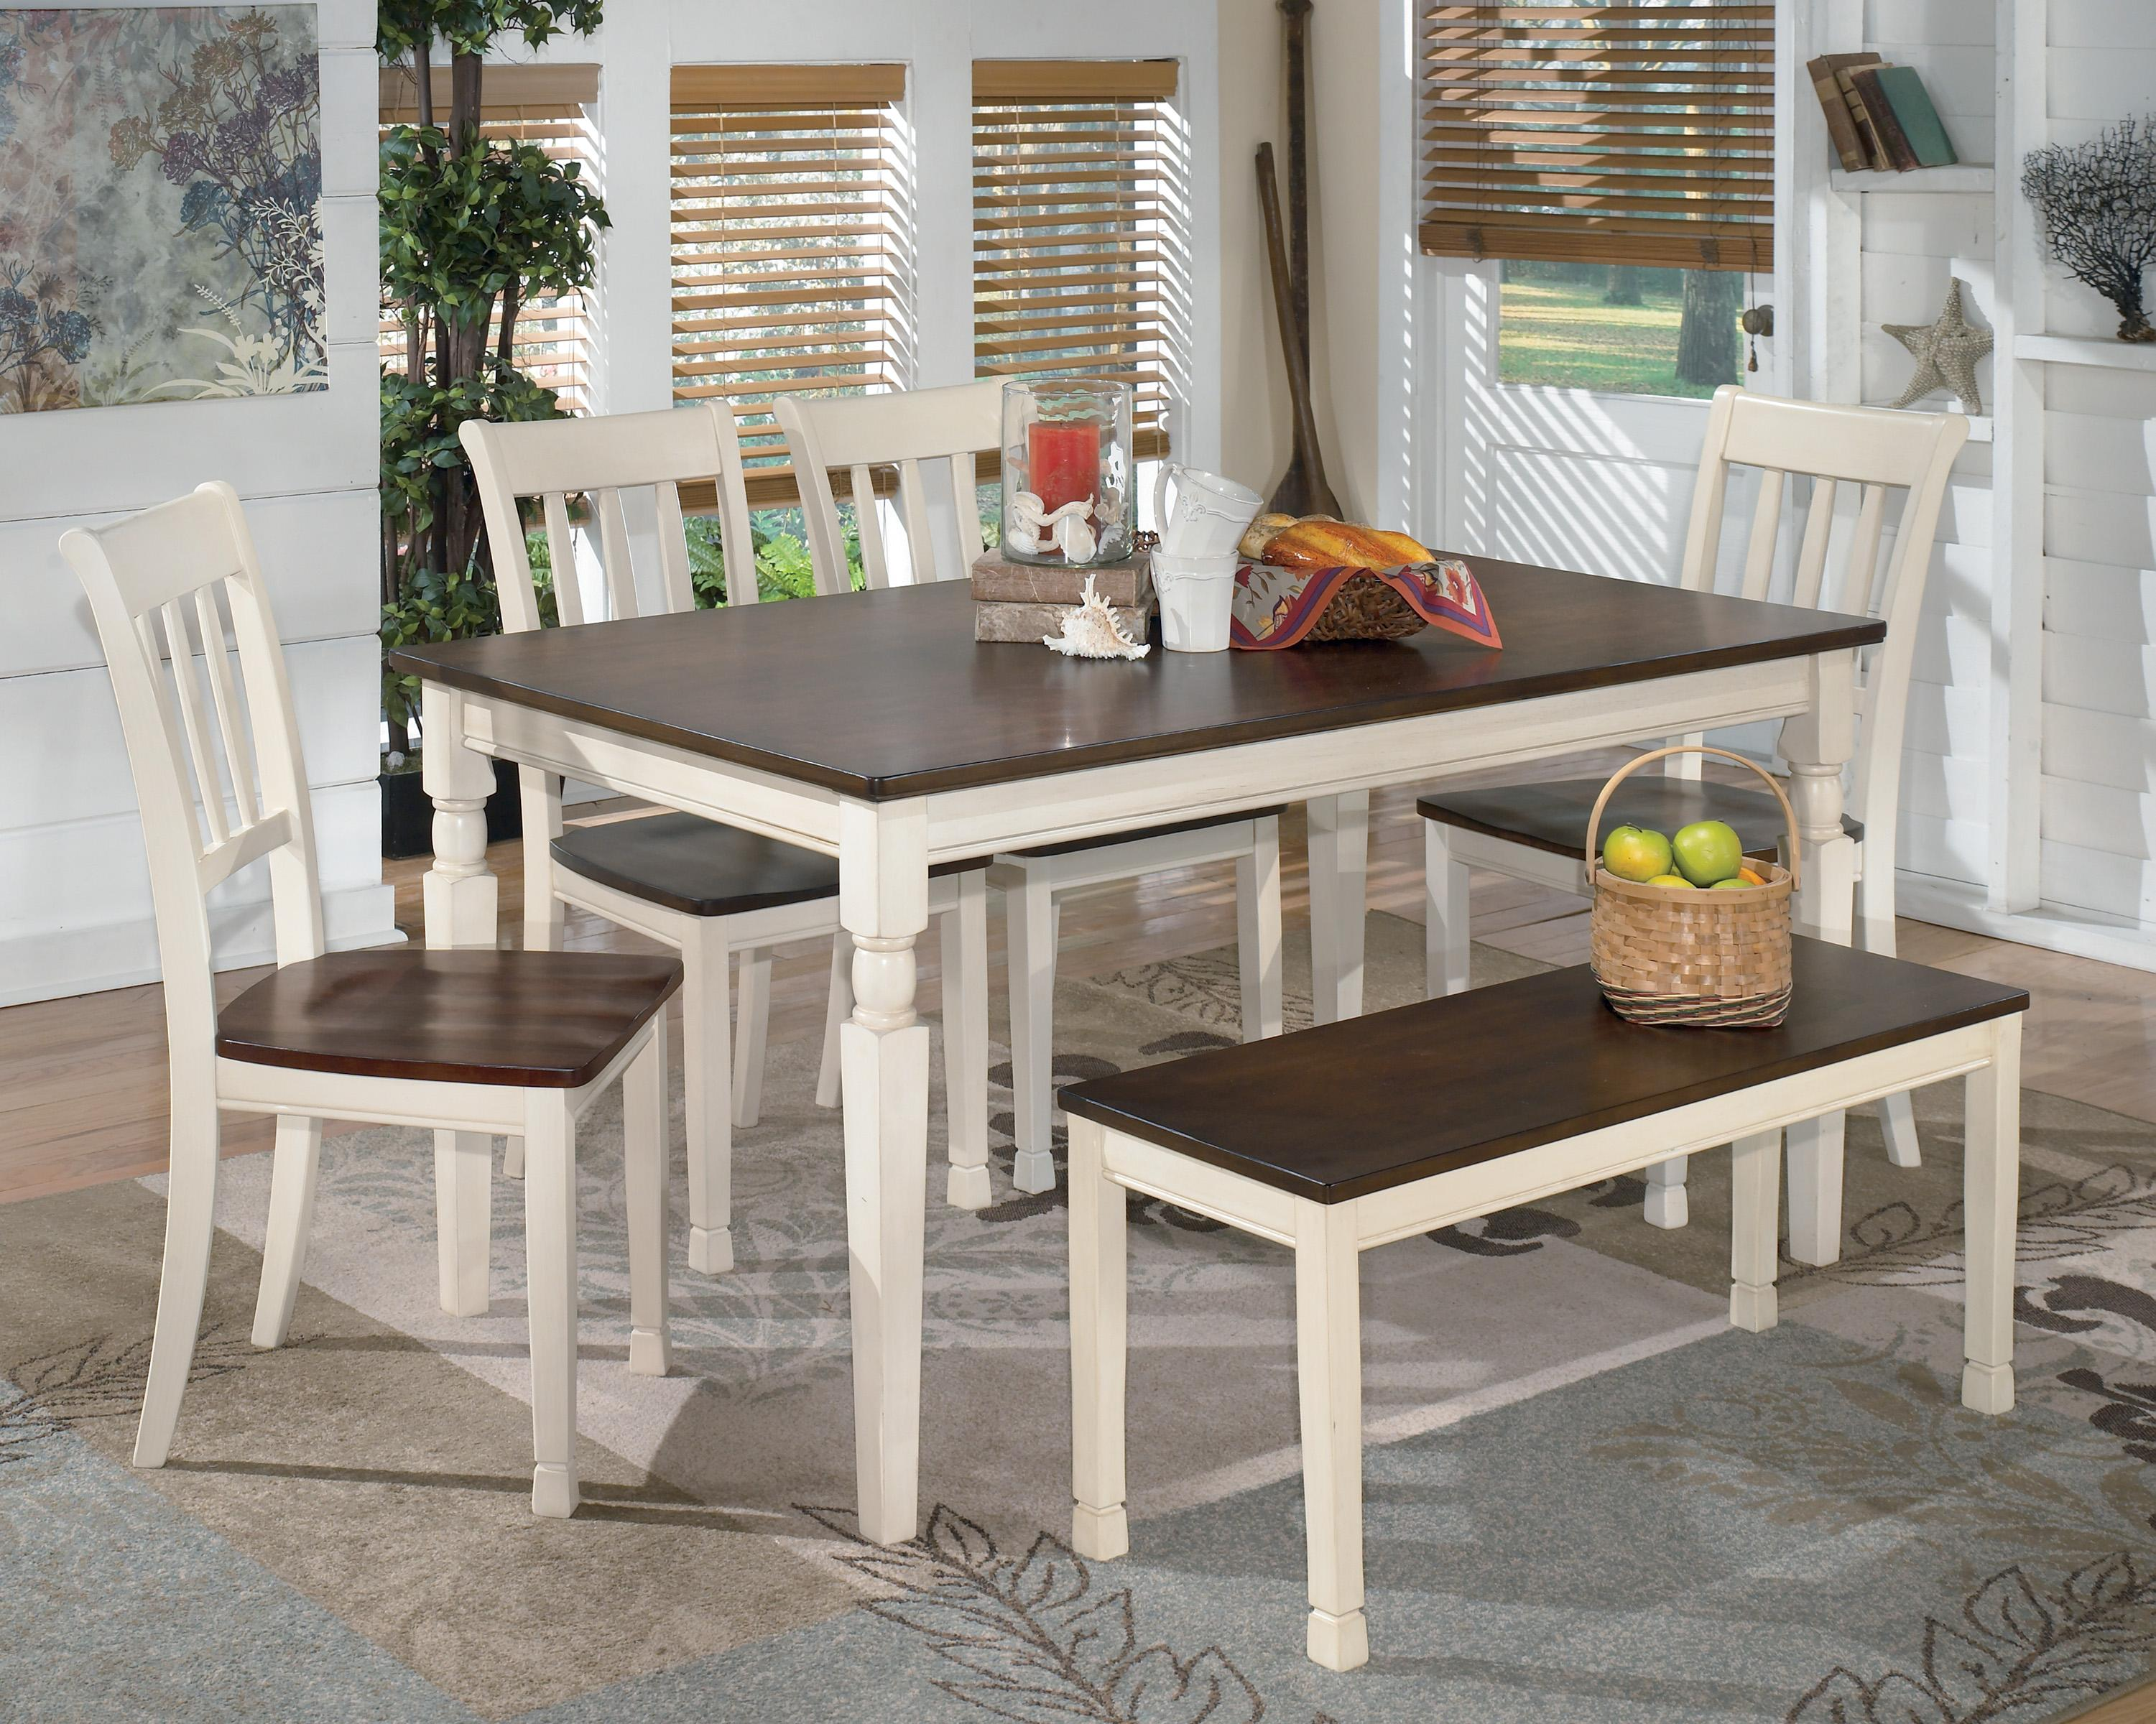 Charmant Signature Design By Ashley Whitesburg 6 Piece Rectangular Table Set With  Bench   Item Number